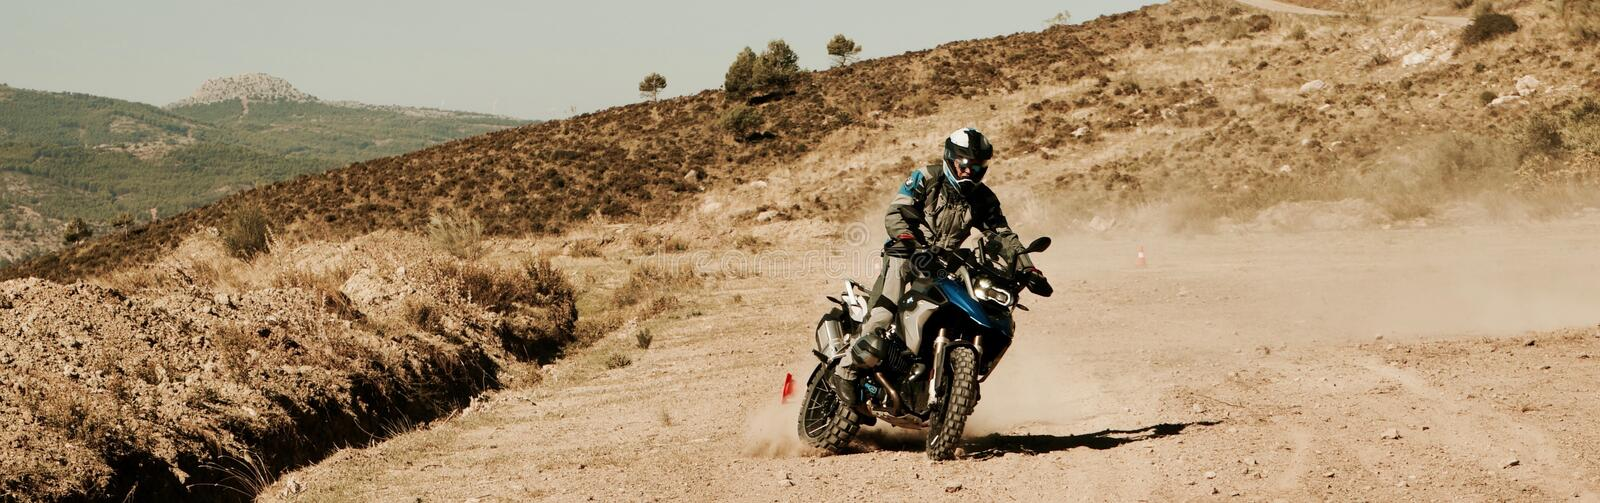 BMW R1200GS Downhill. Offroad Training in Andalusia Spain royalty free stock photography